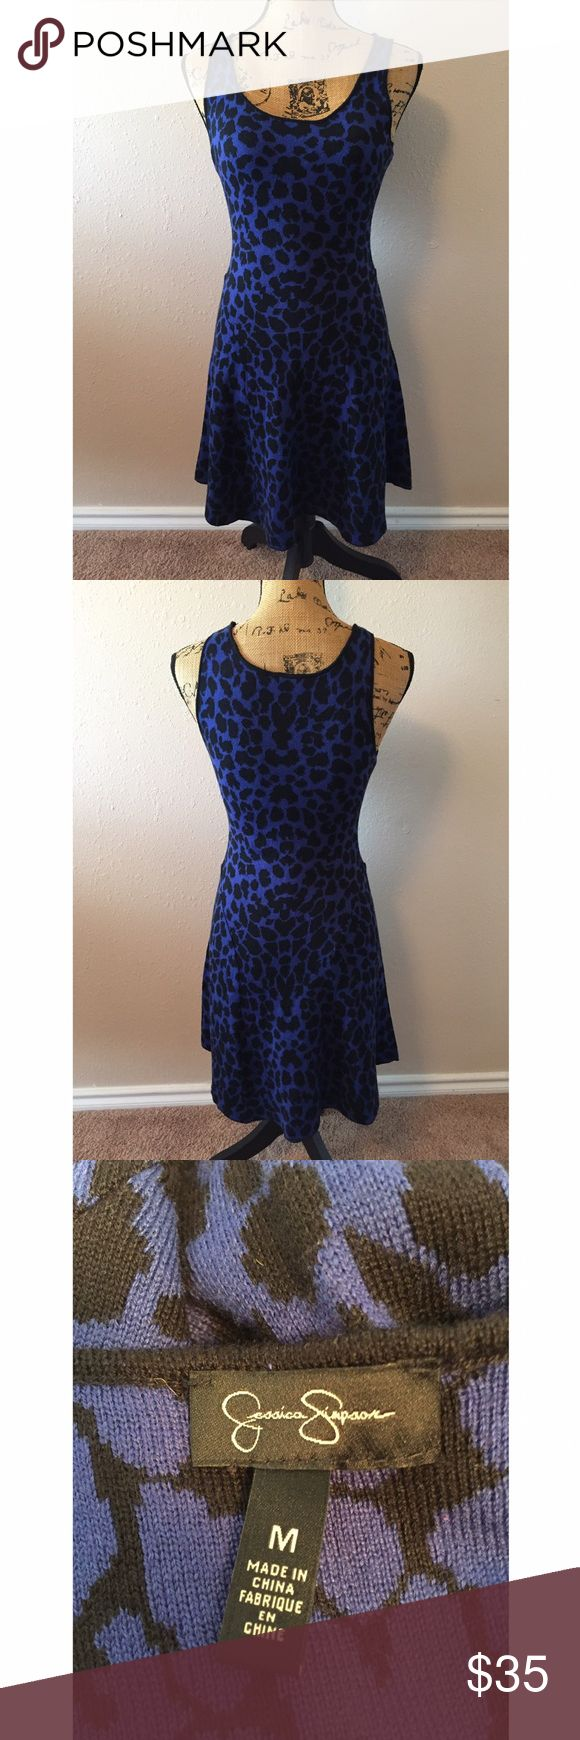 Jessica Simpson Blue Leopard Skater Dress Measurements - Bust 15in (20) Length 26in Dress has a lot of stretch and is super soft. In beautiful condition. ❤️ Jessica Simpson Dresses